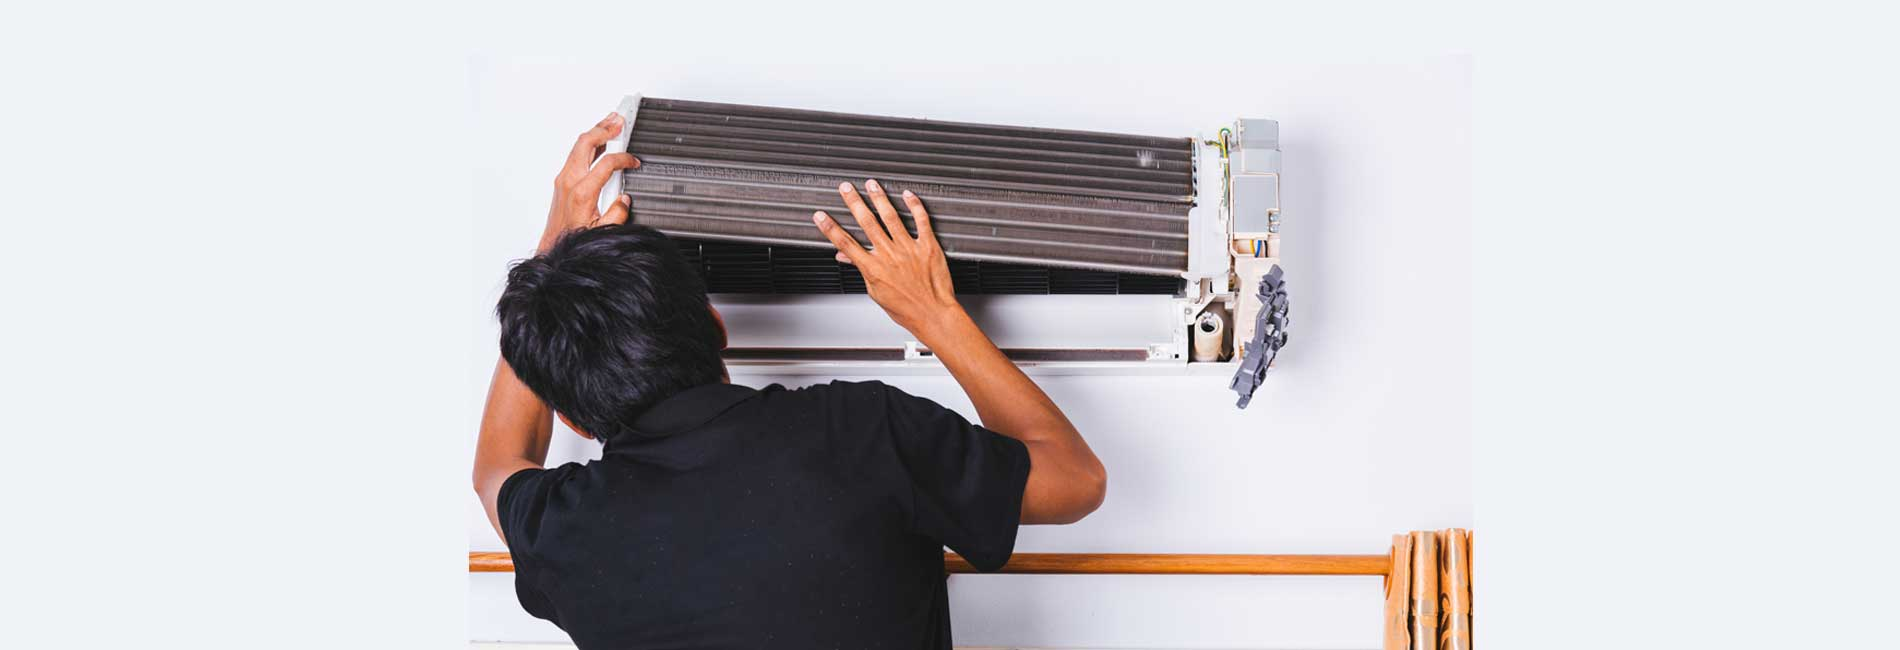 Hitachi AC Repair in Virugambakkam